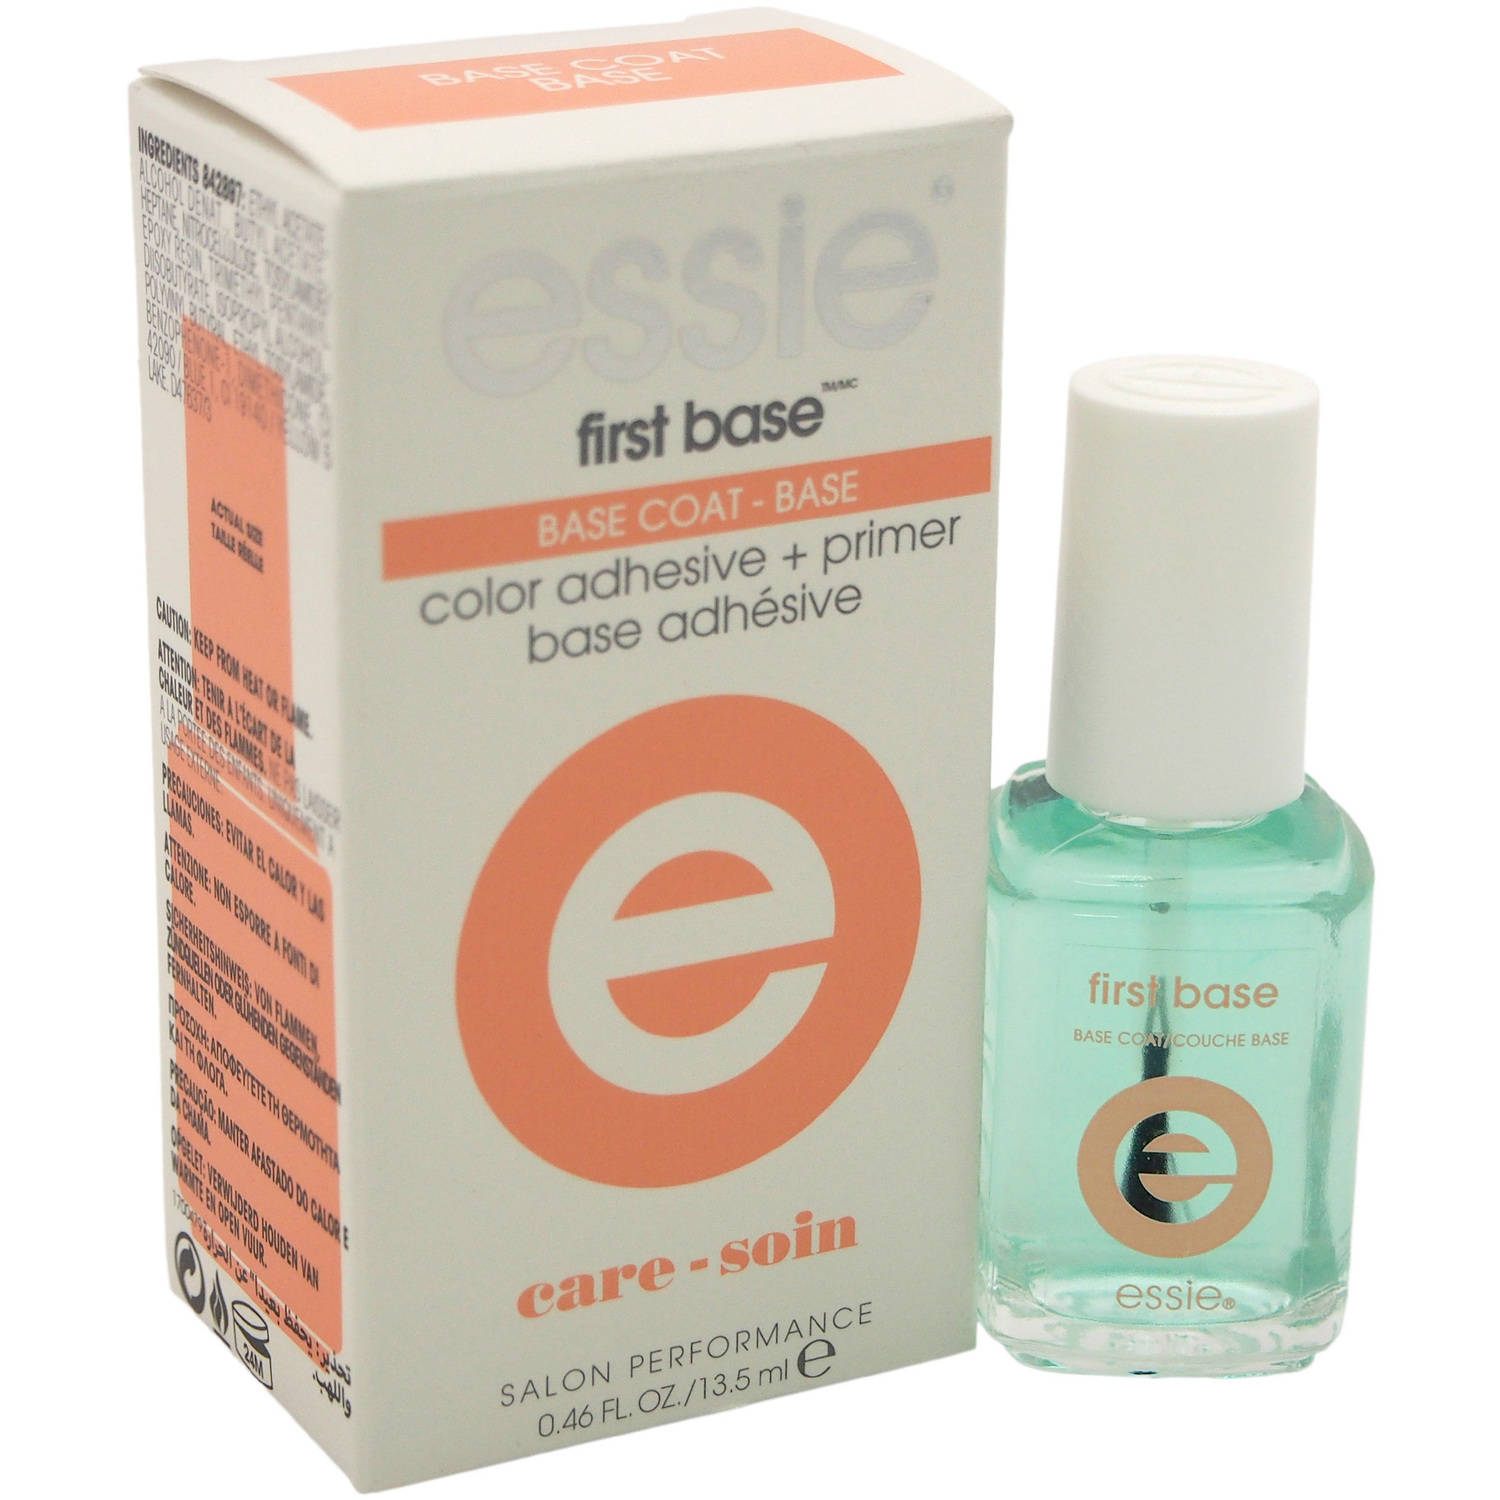 essie First Base Base Coat Nail Polish, 0.46 fl oz